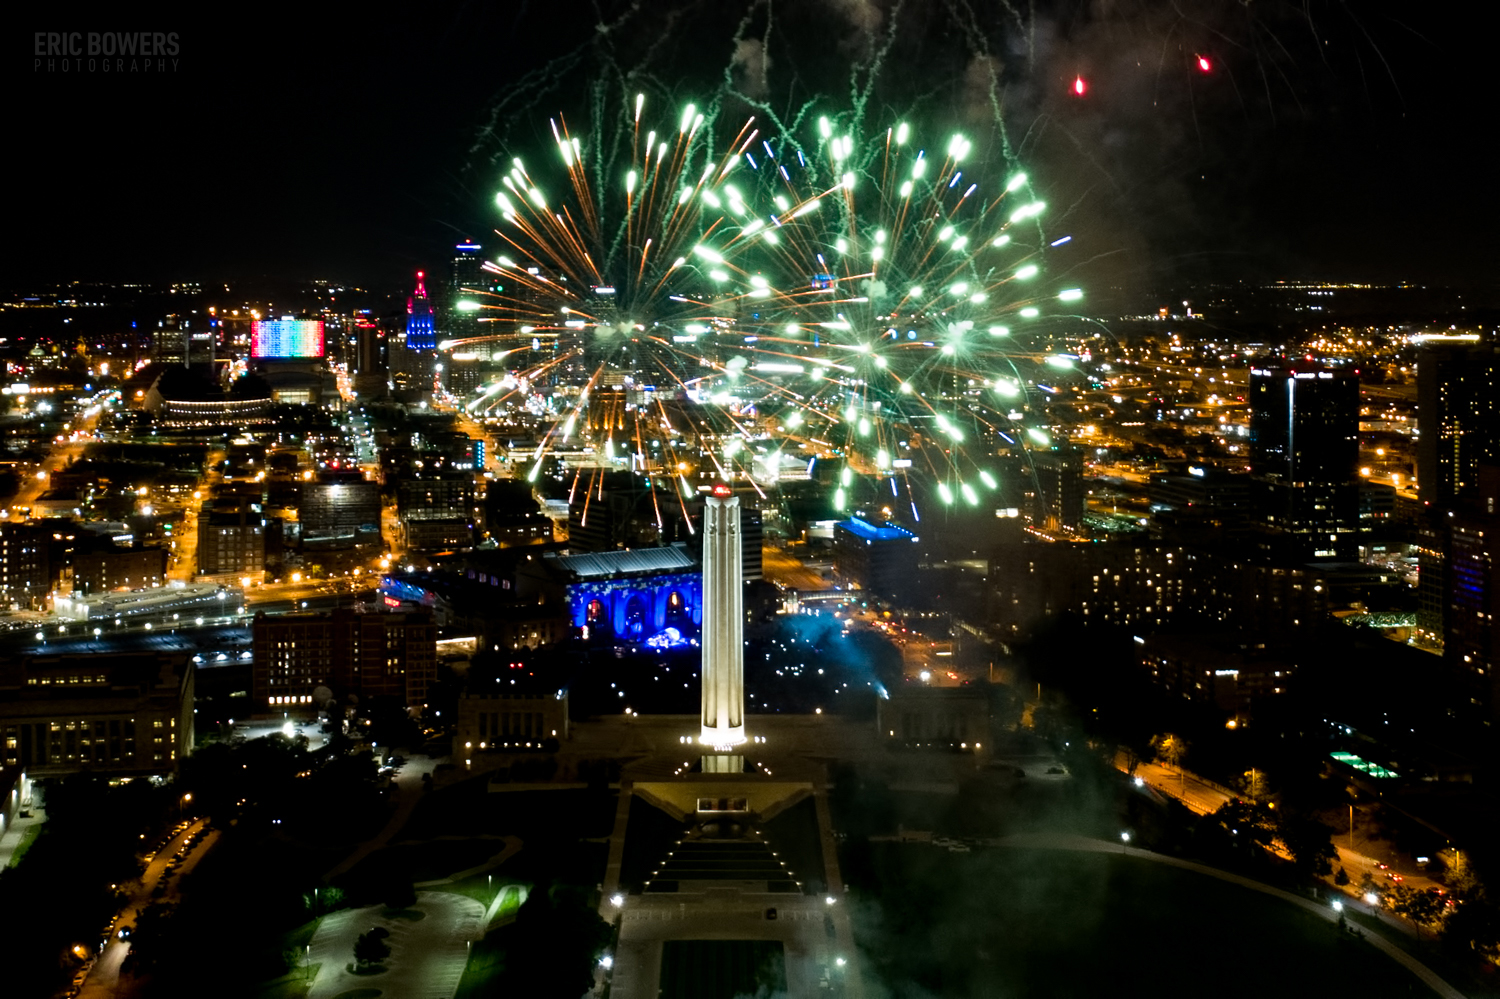 Archive Pull: Fireworks Above KCMO